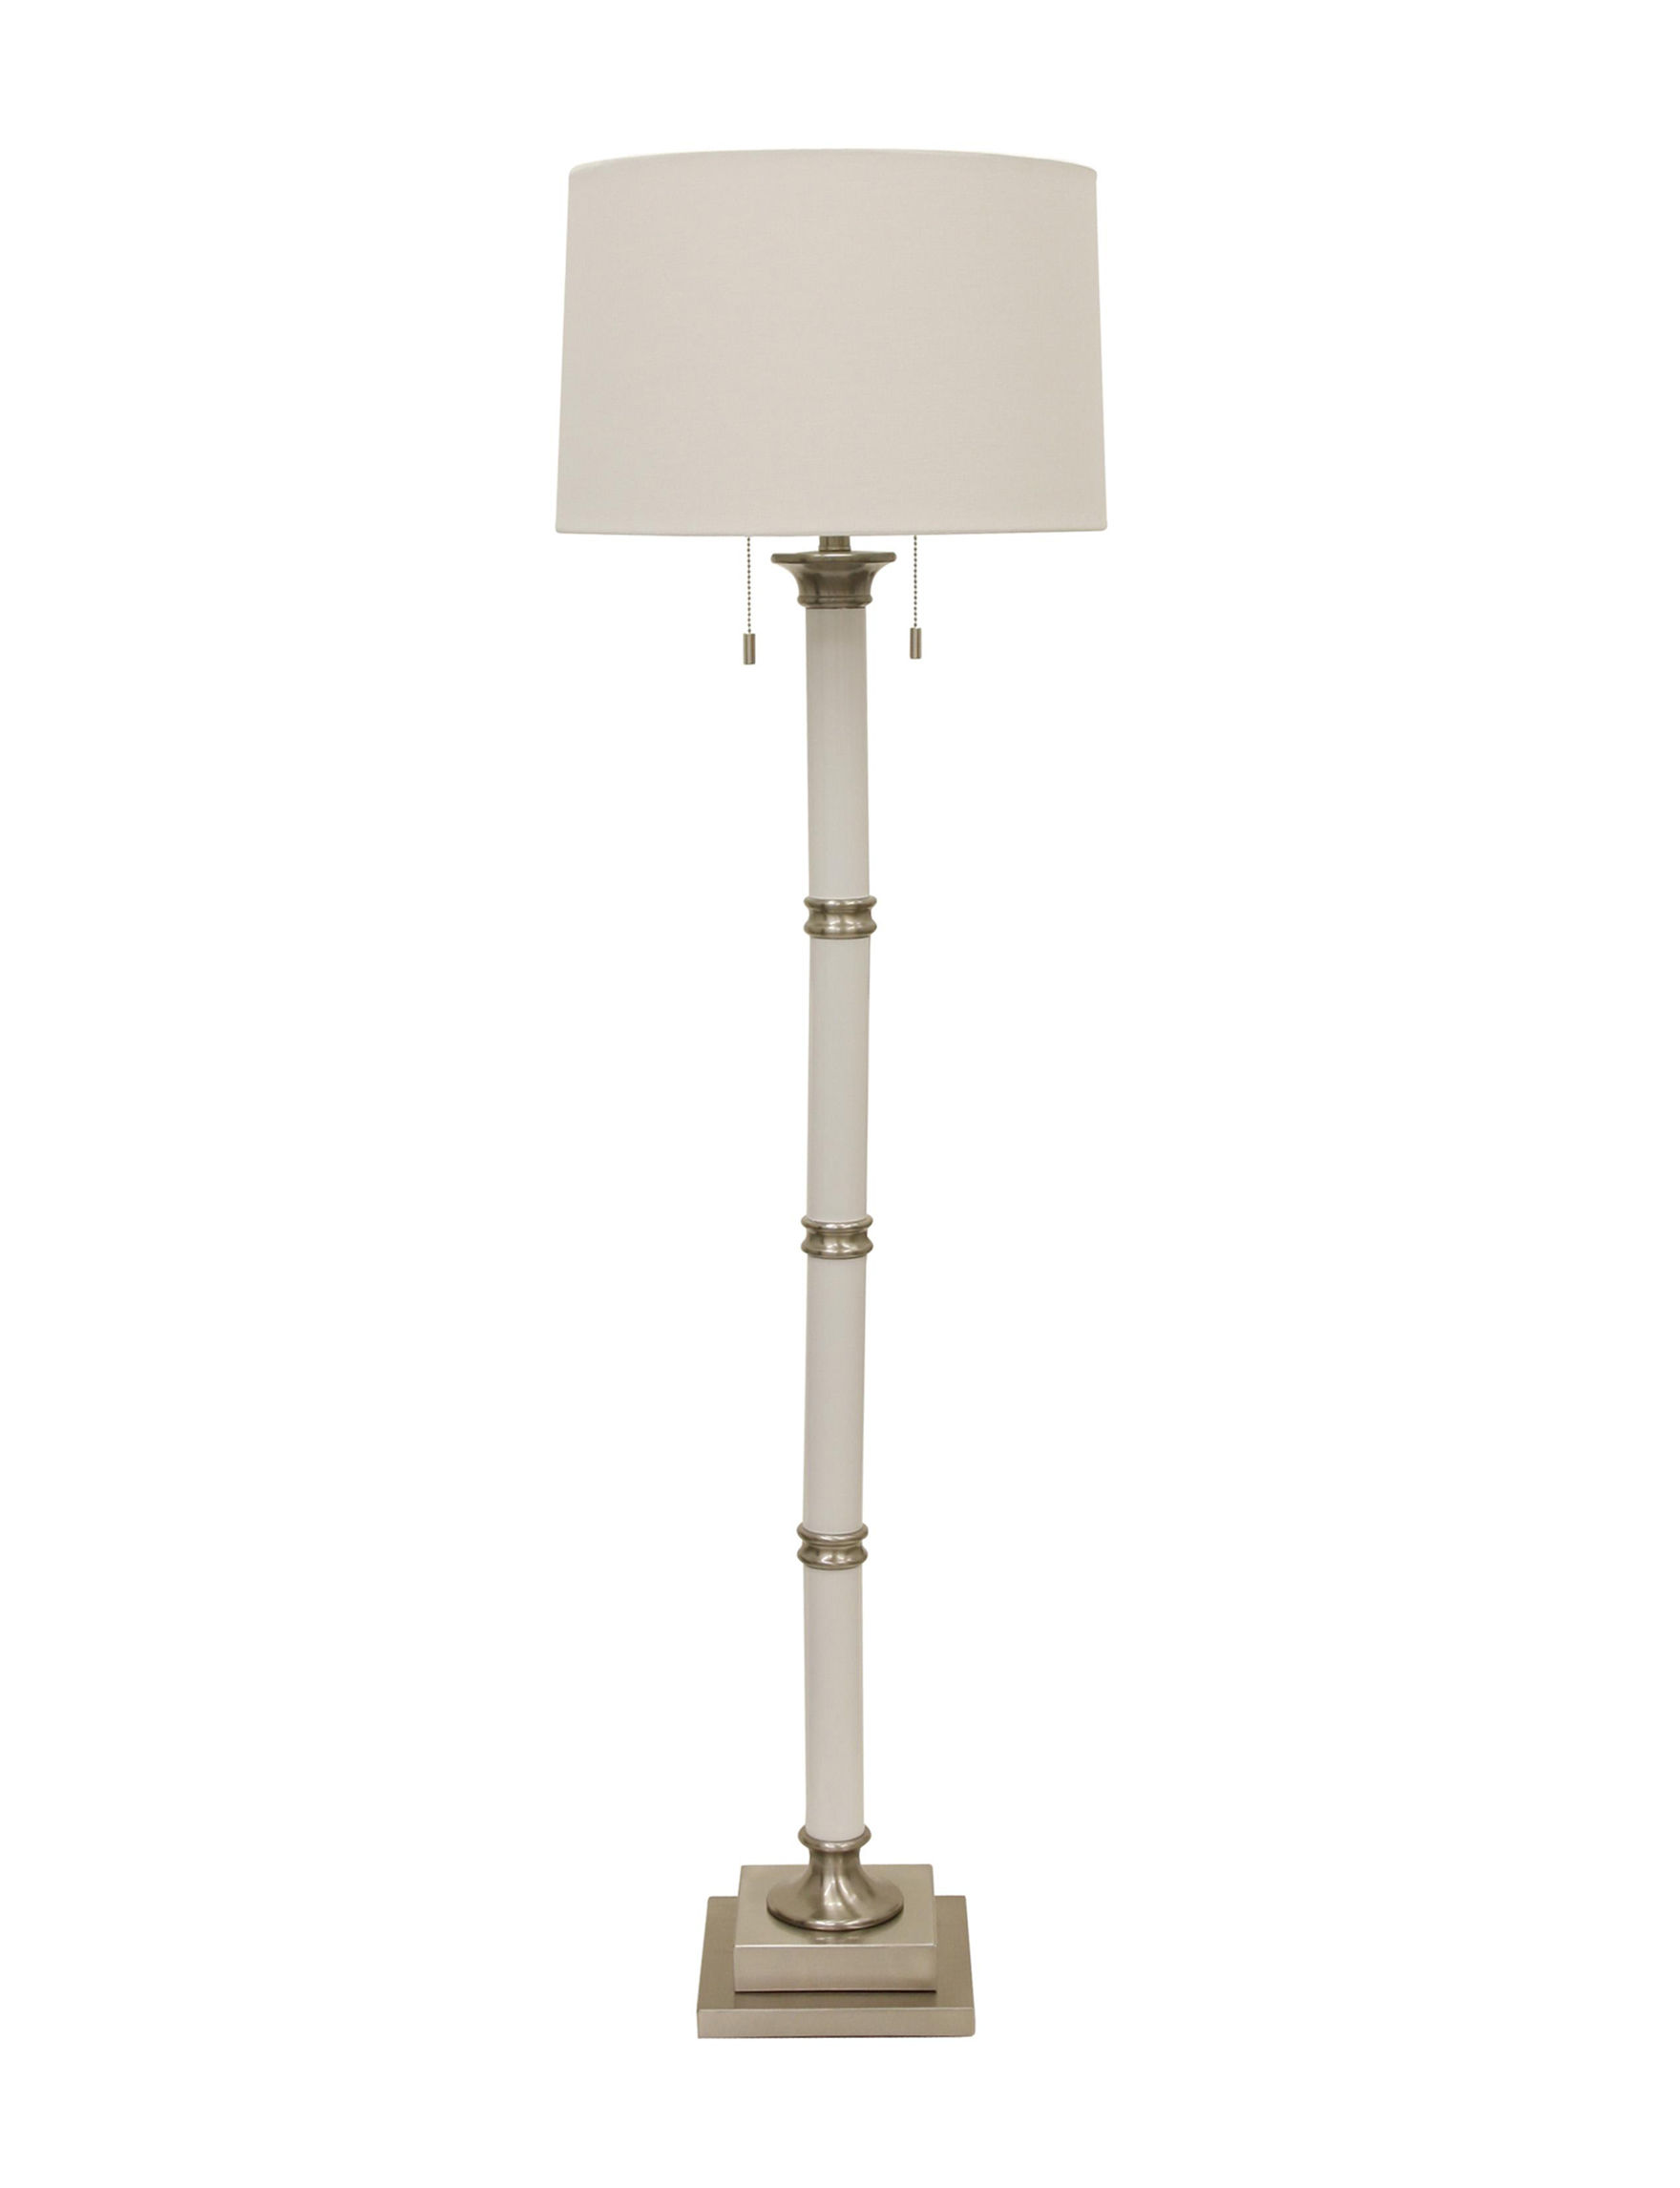 Decor Therapy White / Silver Floor Lamps Lighting & Lamps